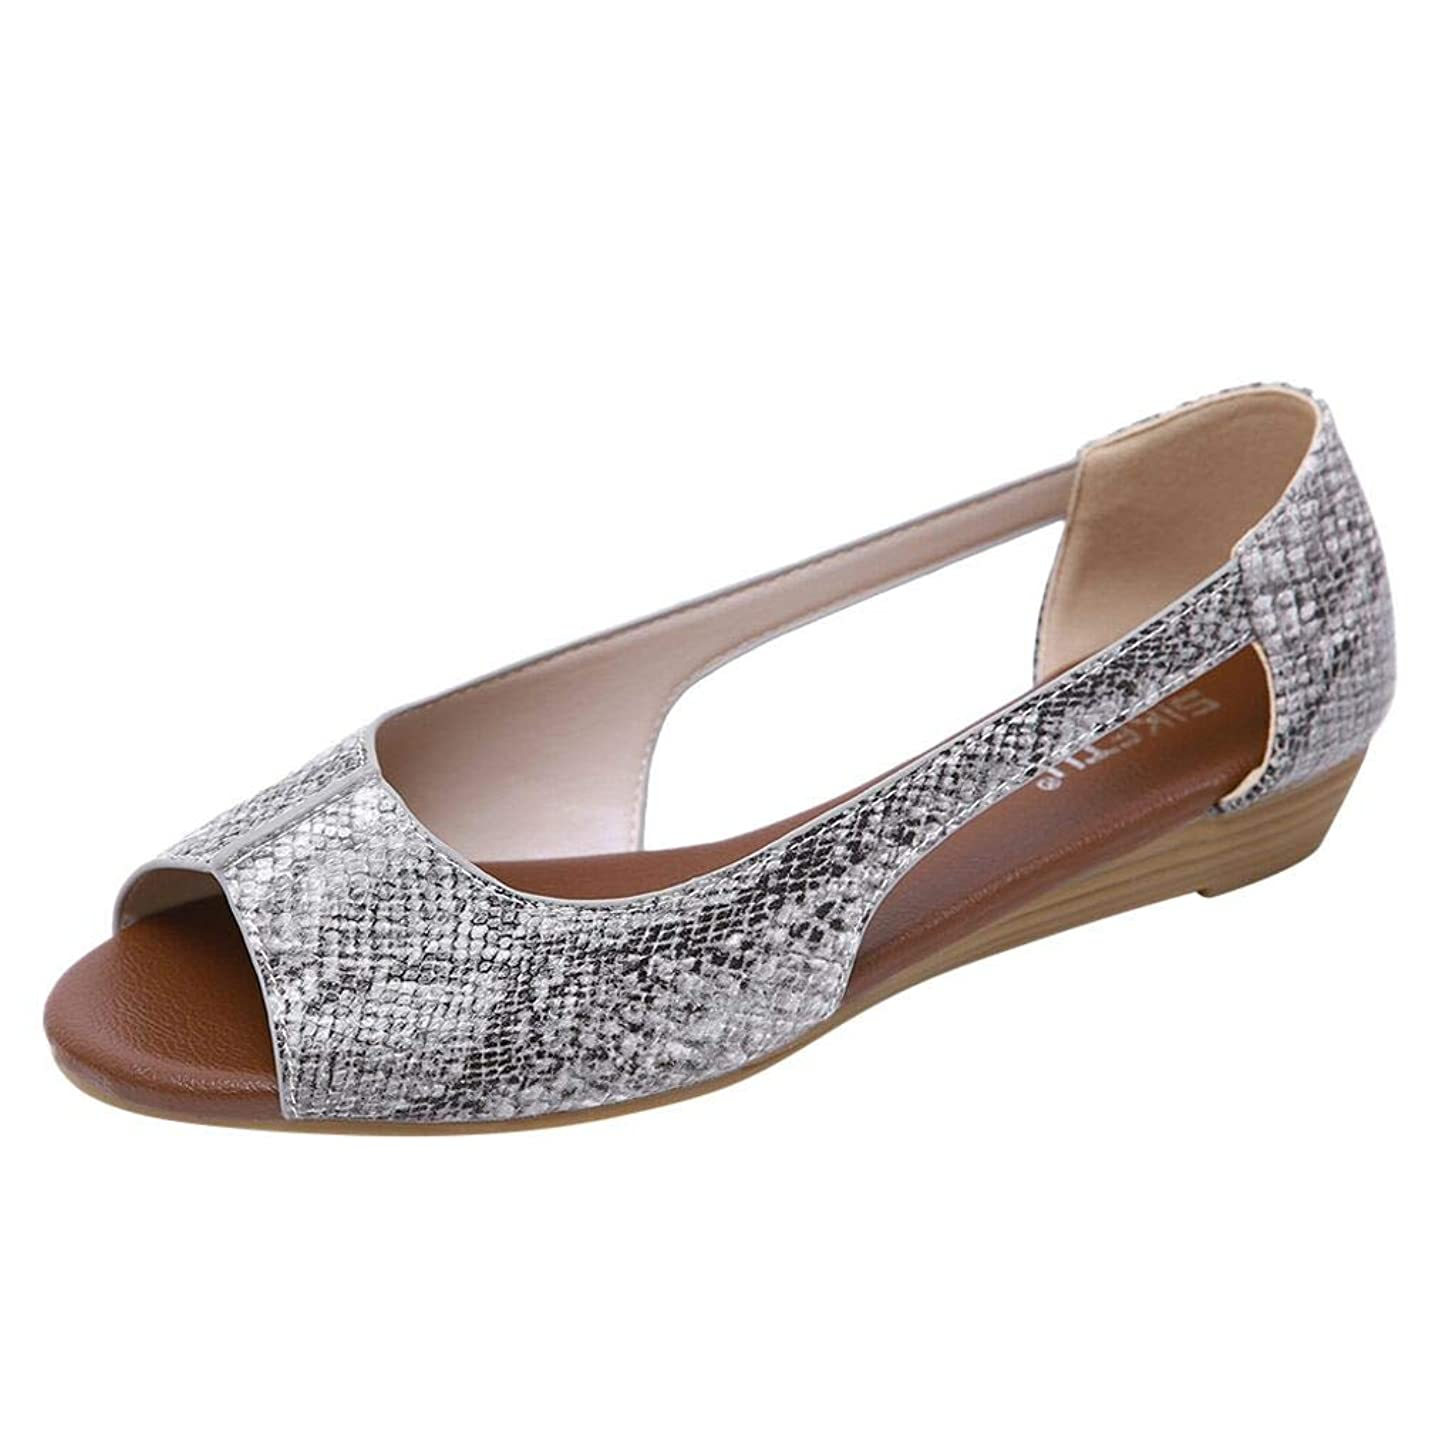 Women's Comfortable Solid Sied Cut Out Slip On Peas Shoes Casual Peep Toe Work Walking Flat Sandals JHKUNO